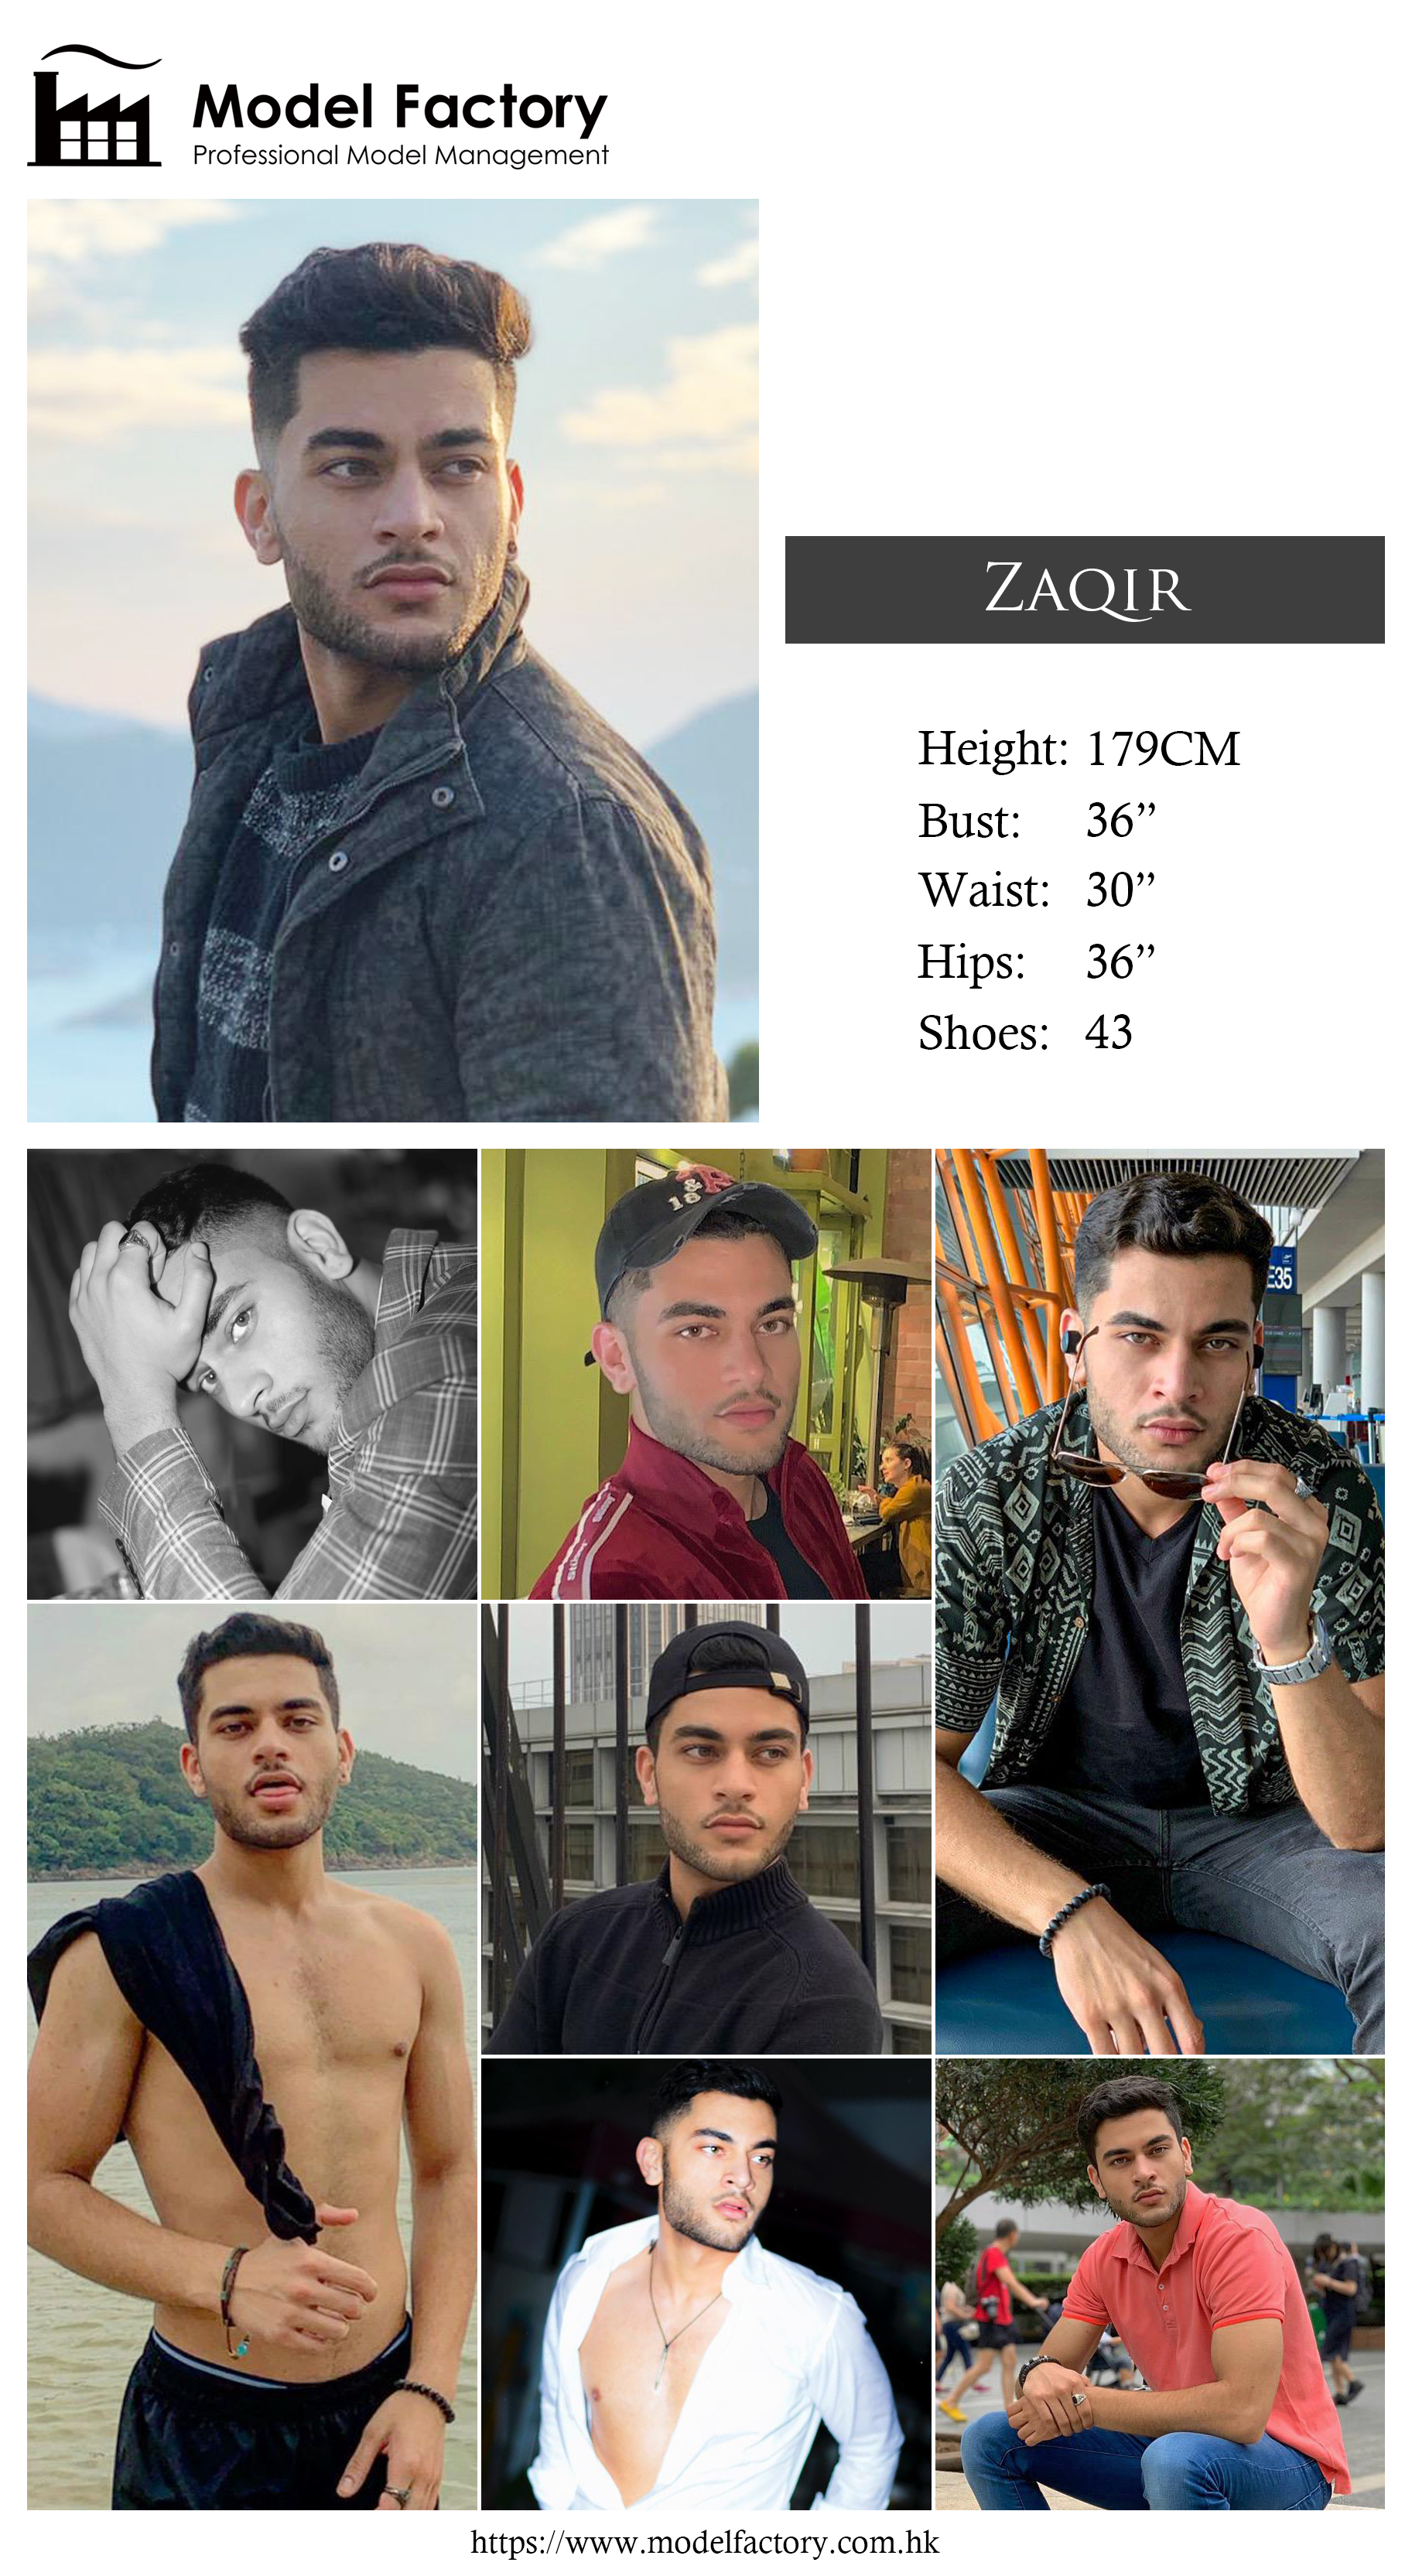 Model Factory Caucasian Male Model Zaqir